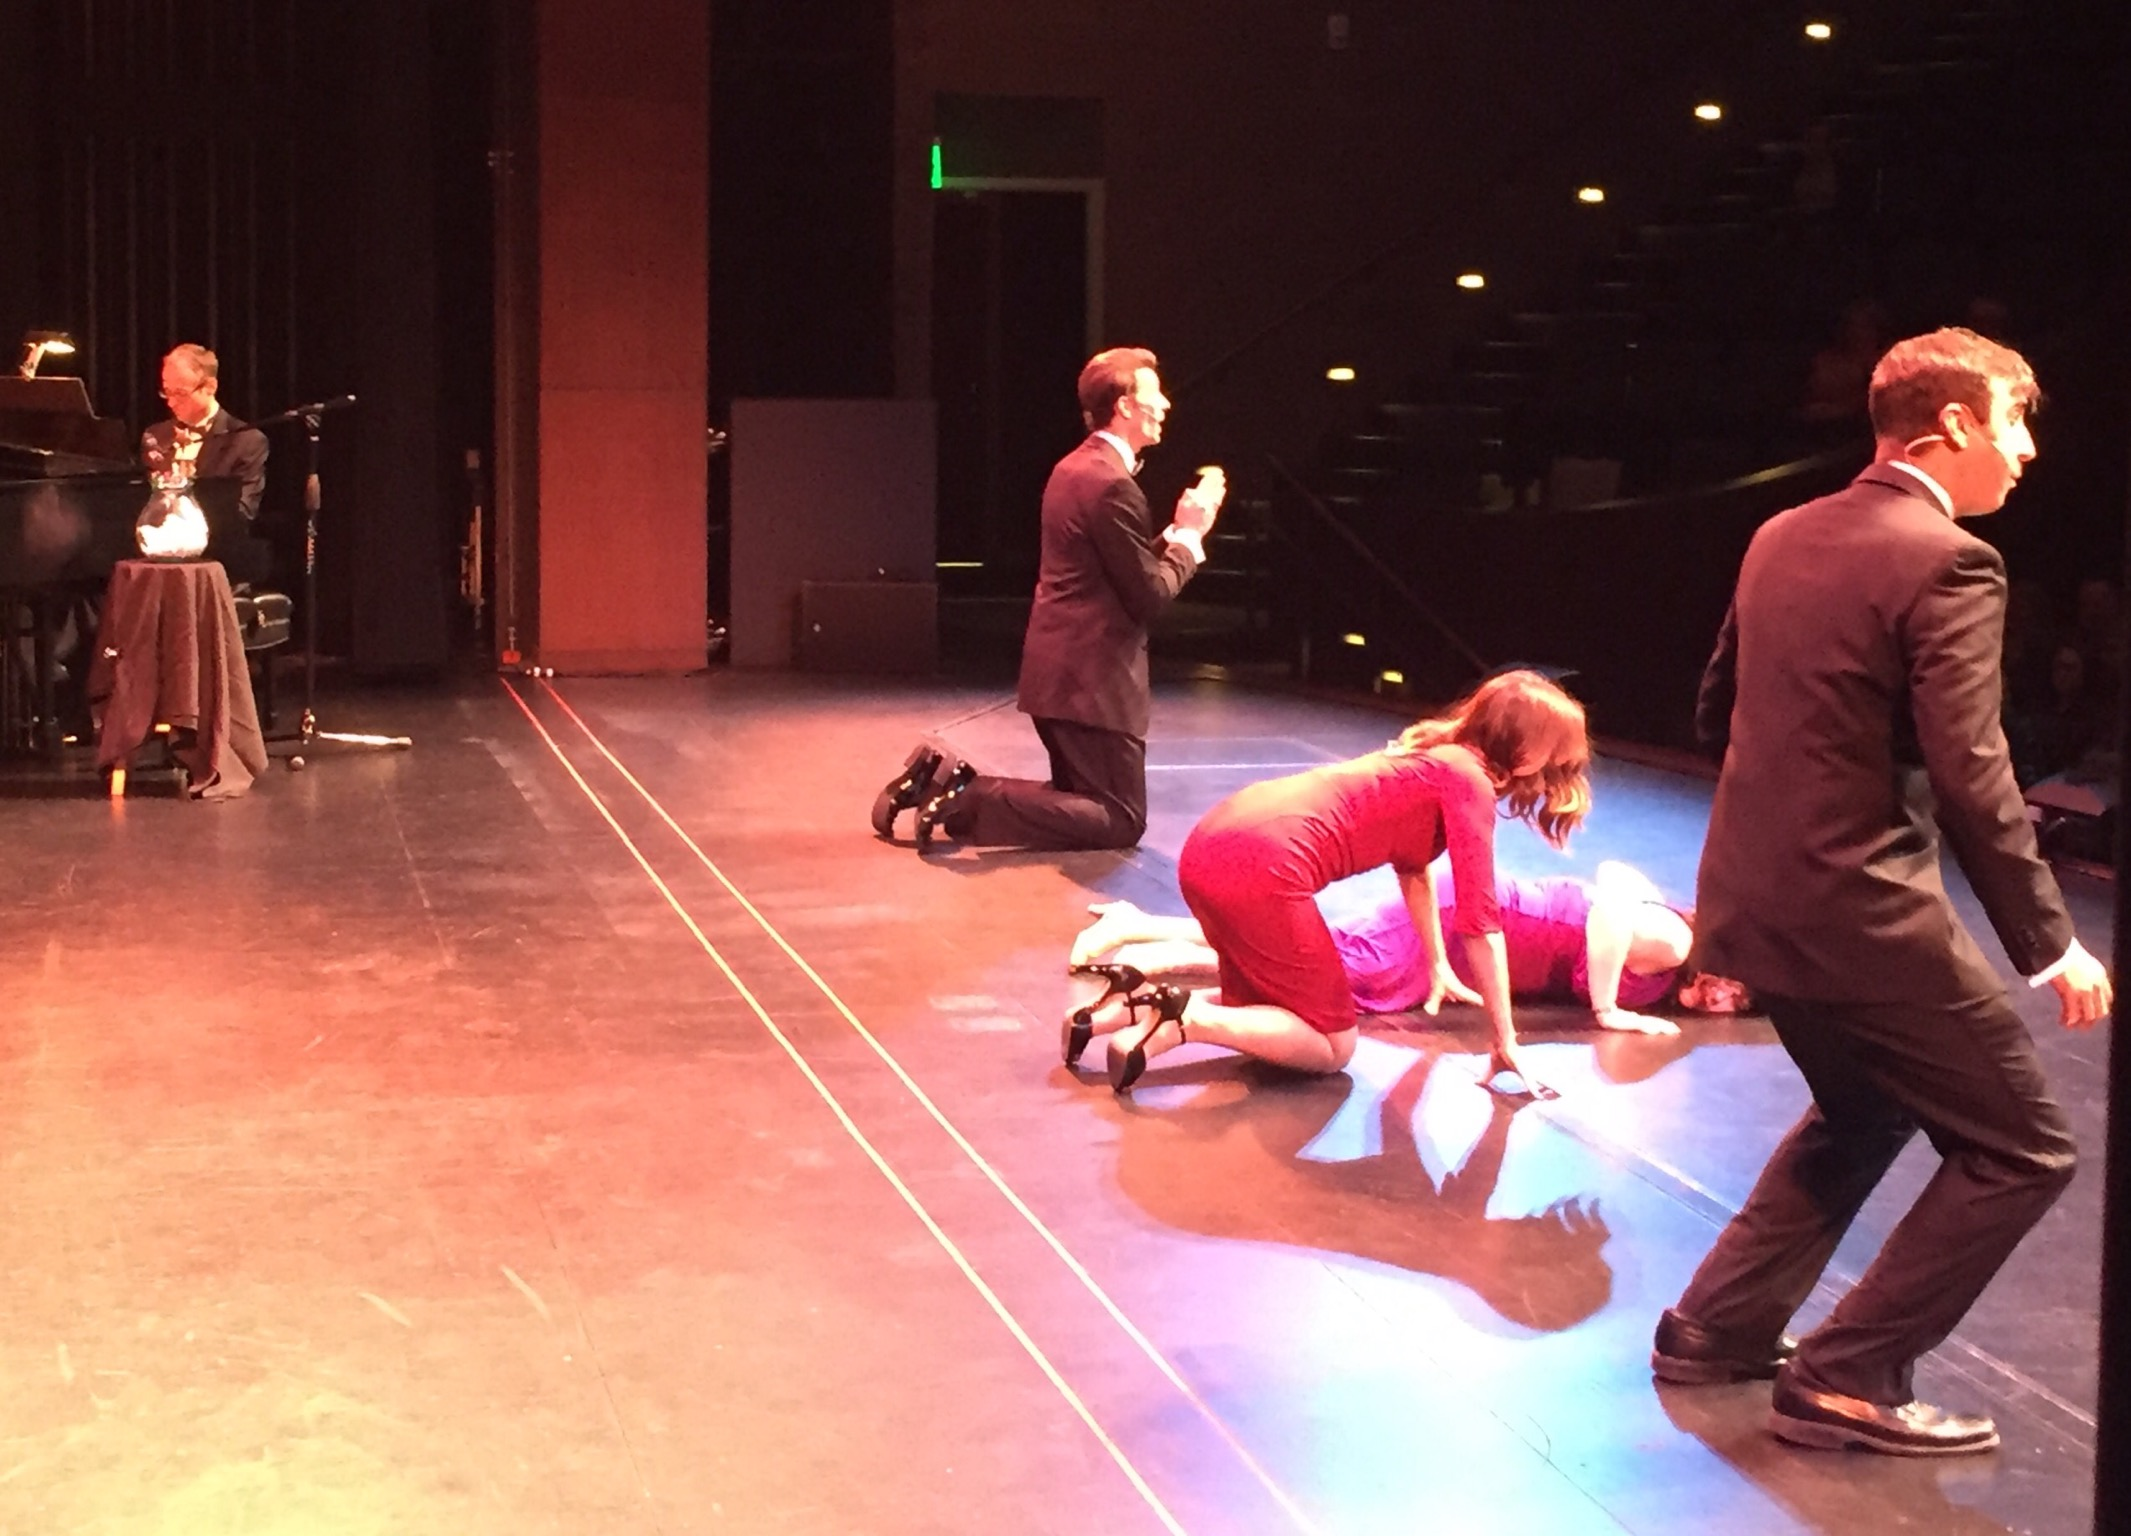 Onstage, Act I